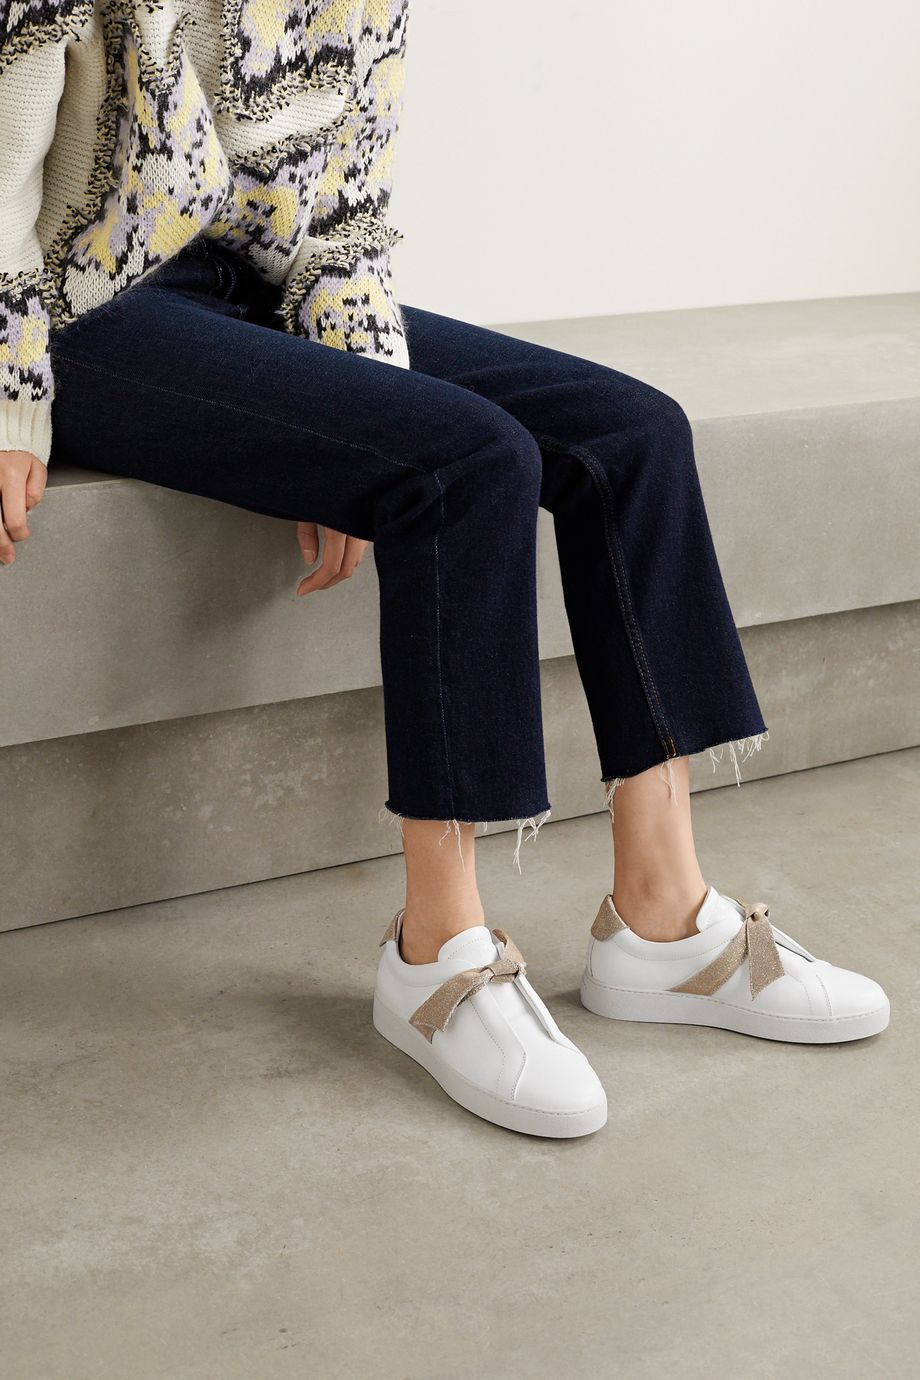 Alexandre Birman Clarita bow-embellished Lurex-trimmed leather slip-on sneakers